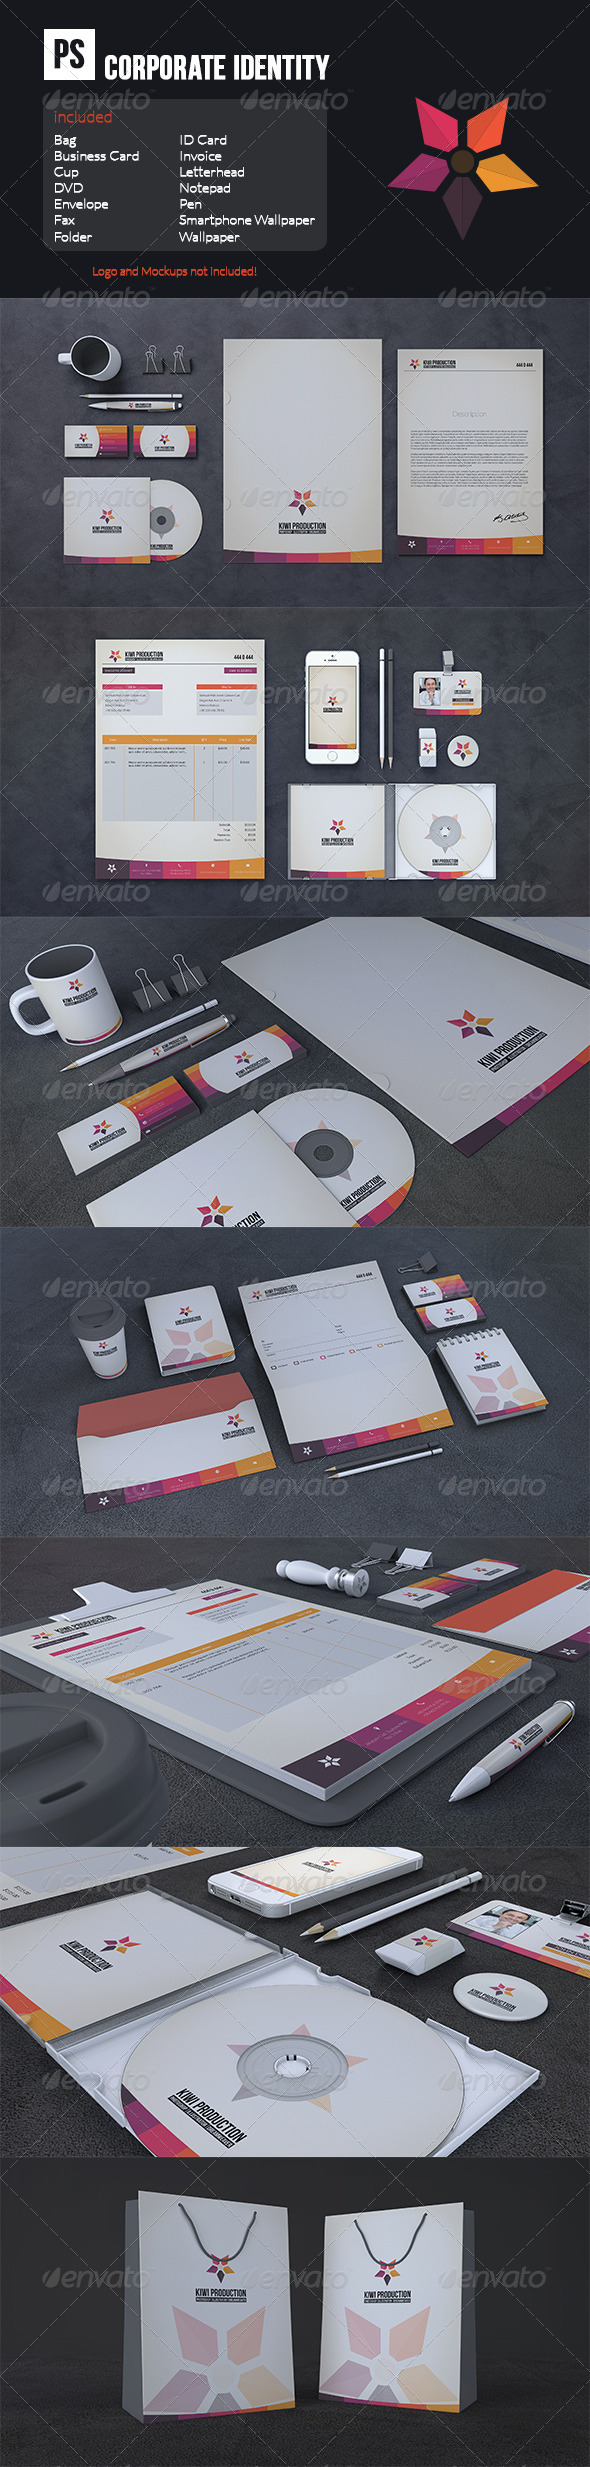 GraphicRiver Corporate Identity 6513813